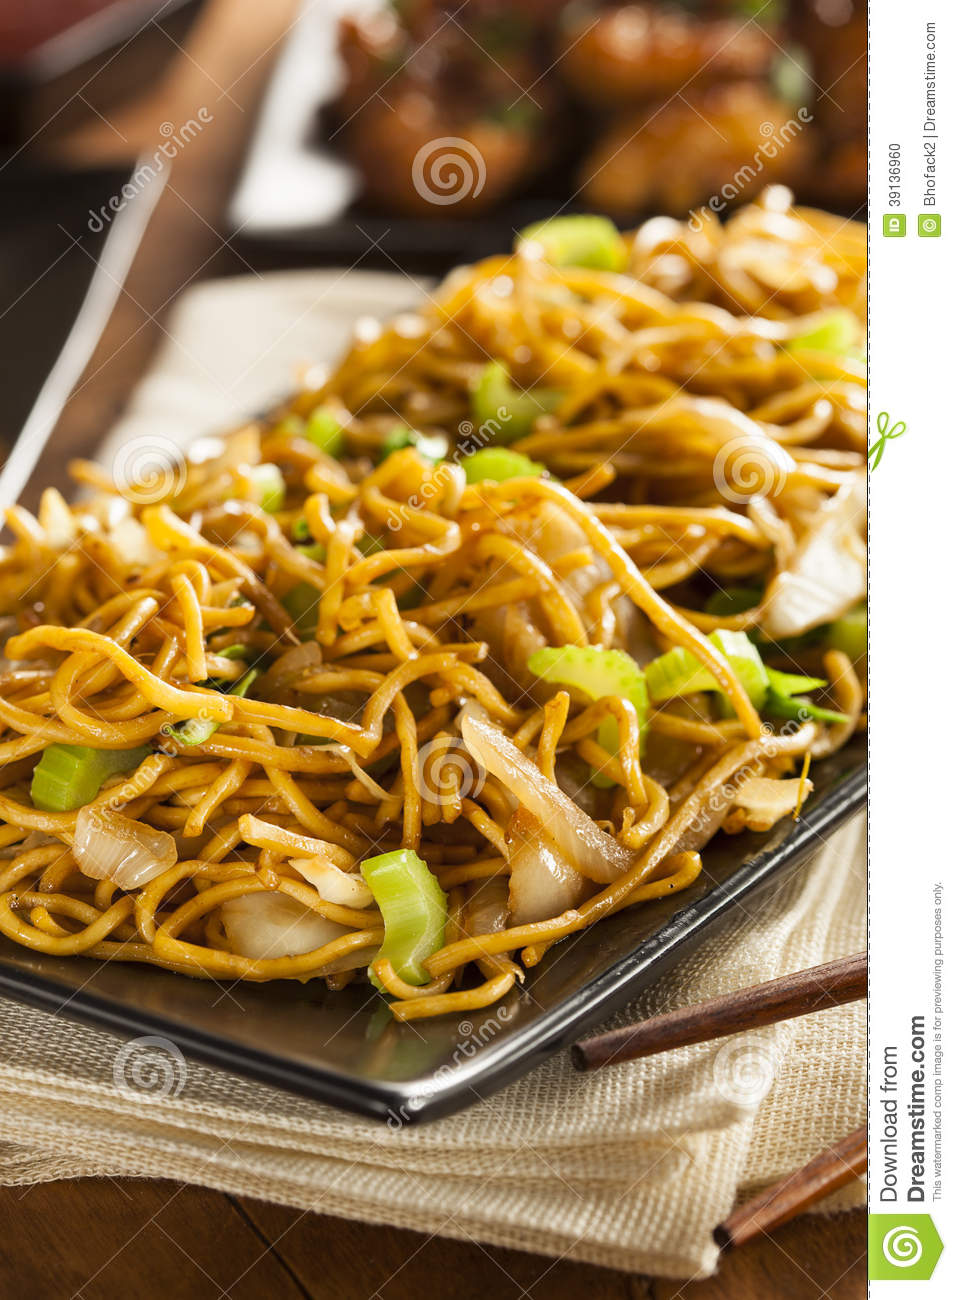 Asian Chow Mein Noodles with Vegetables and Chopsticks.